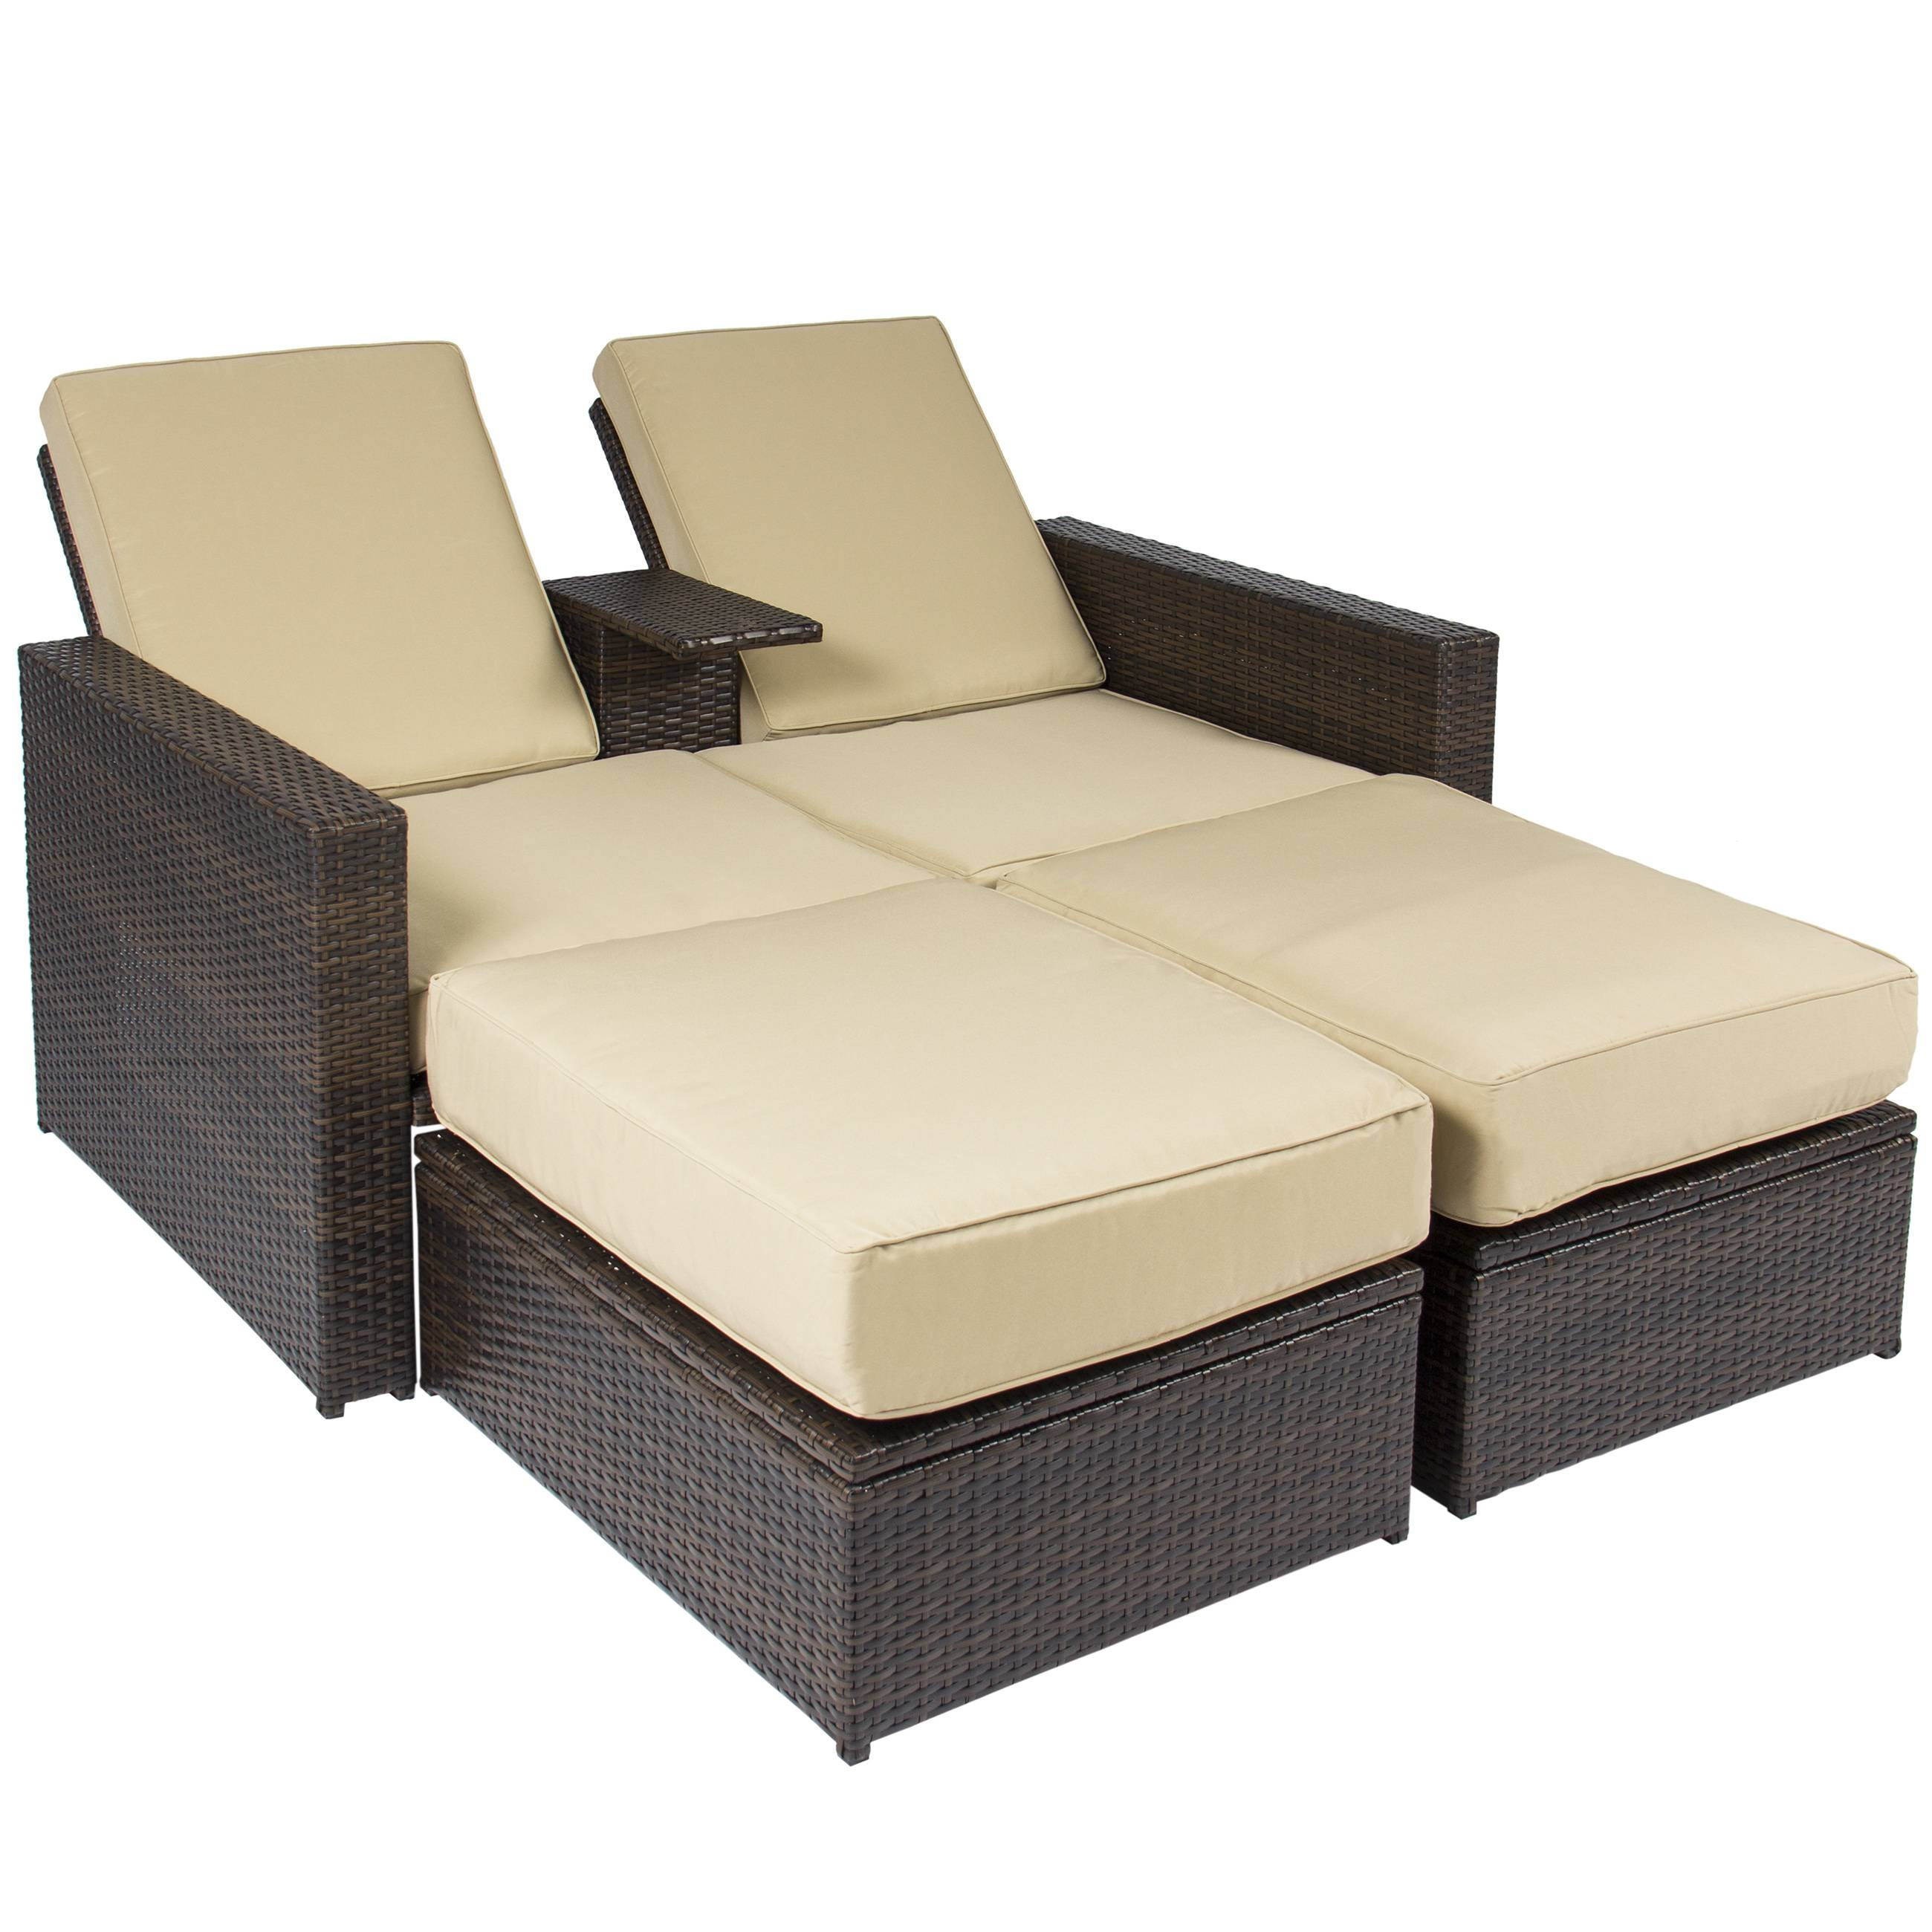 Best Choice Products 7Pc Outdoor Patio Garden Furniture Wicker inside Outdoor Sofa Chairs (Image 7 of 30)